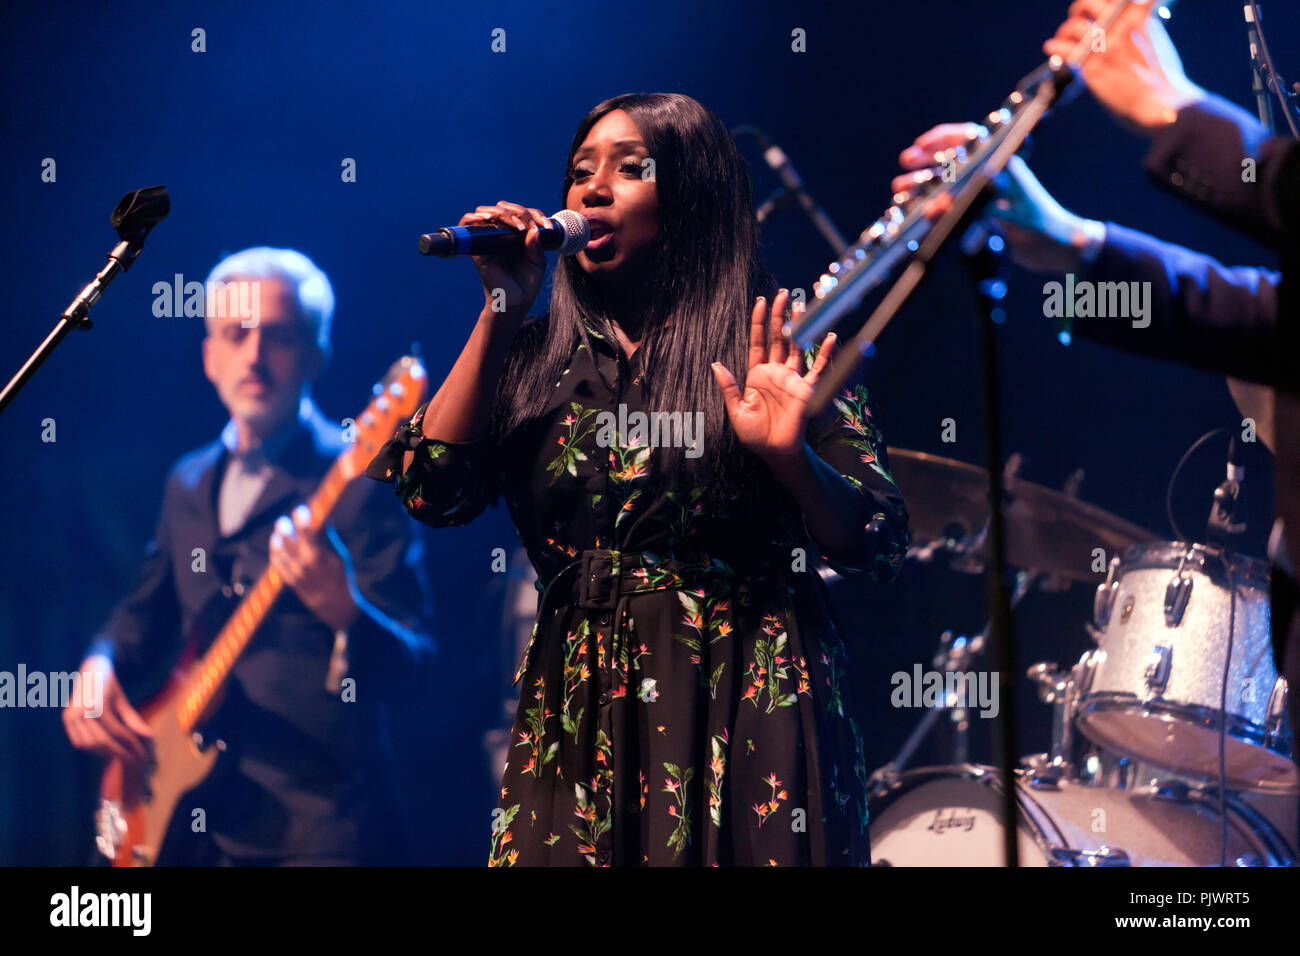 Yvonne Yanney performing with the James Taylor Quartet on stage 2 of the OnBlackheath Music Festival, Lewisham, London - Stock Image